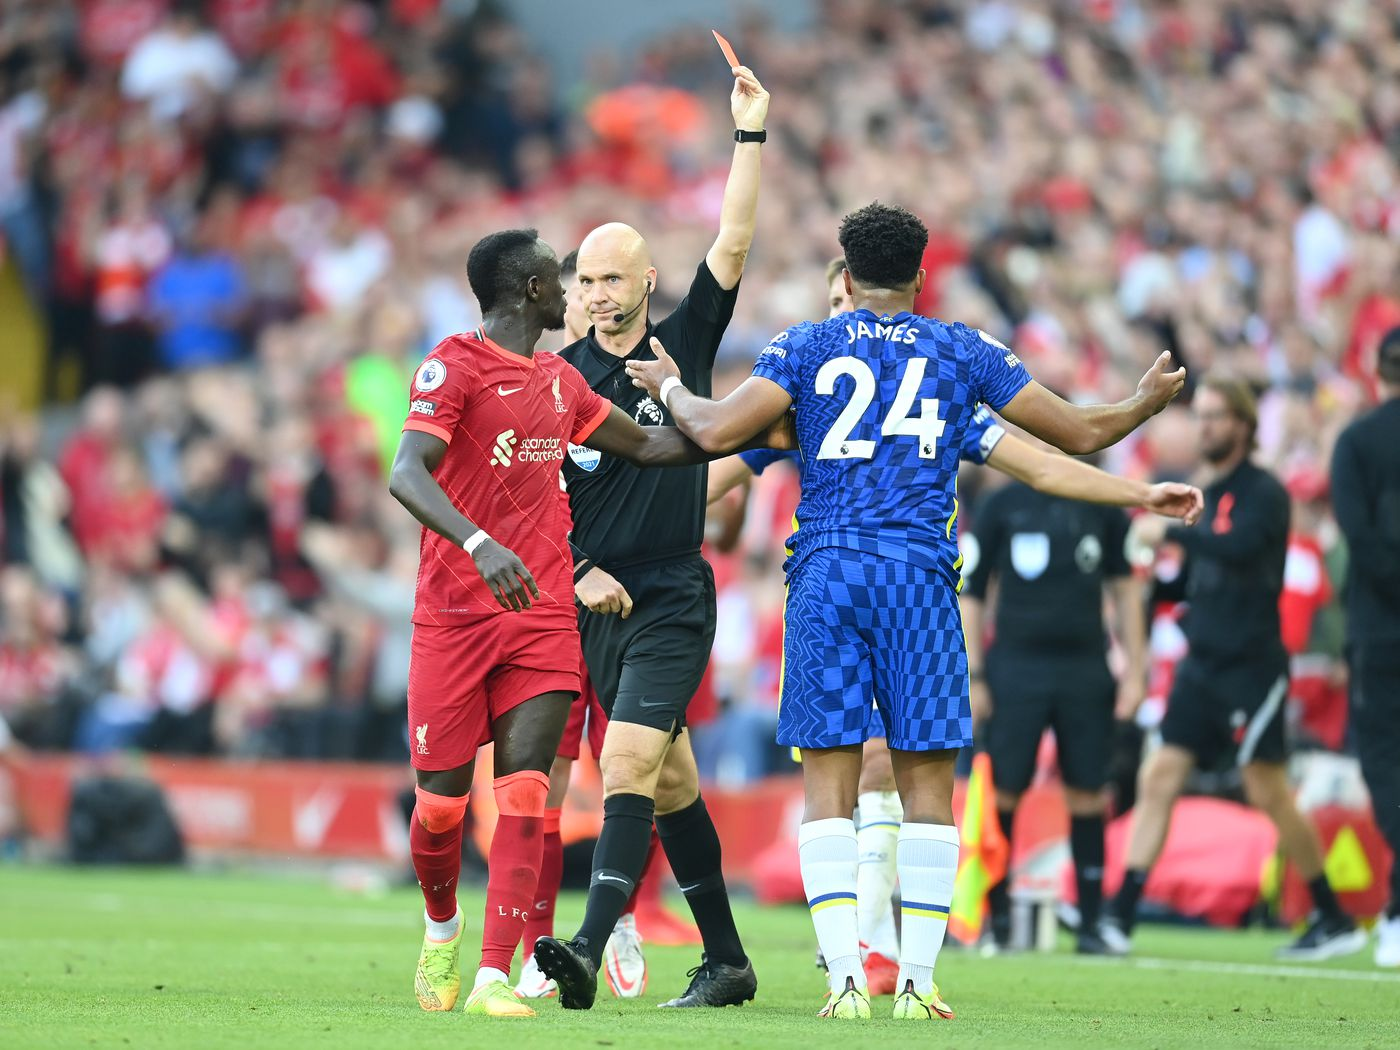 WATCH: Reece James red card, Anthony Taylor clownshow at Anfield - We Ain't  Got No History